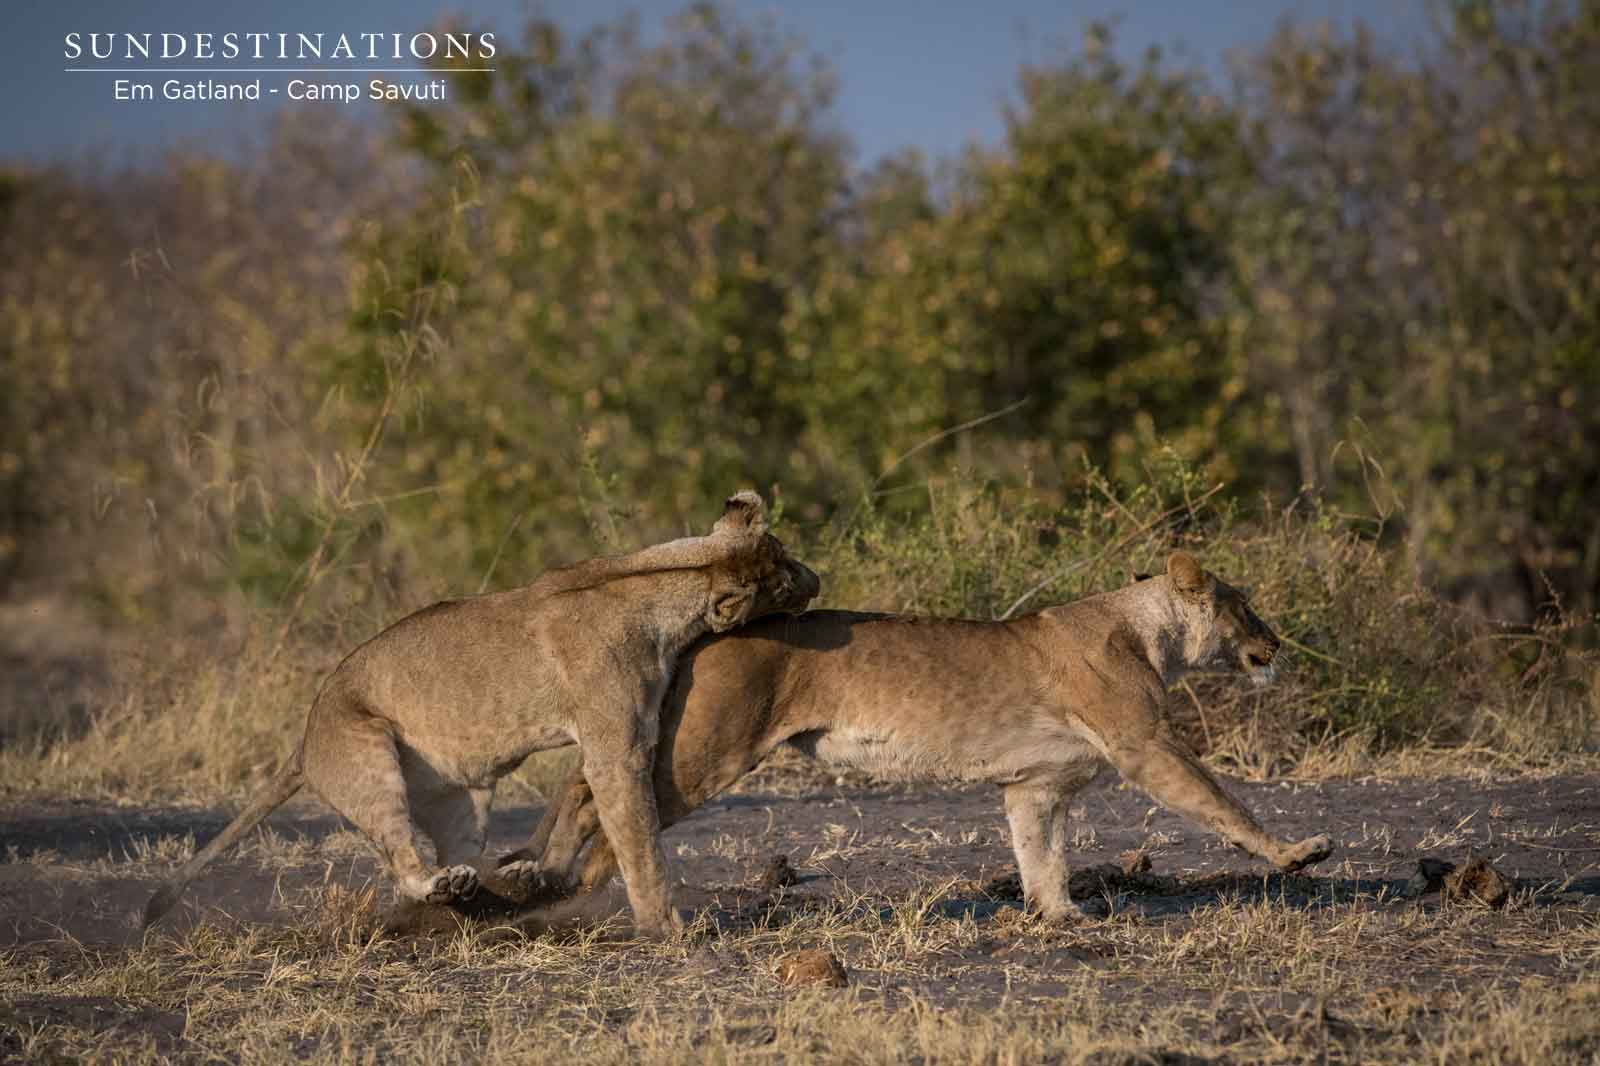 Marsh Pride of Lionesses in Savuti